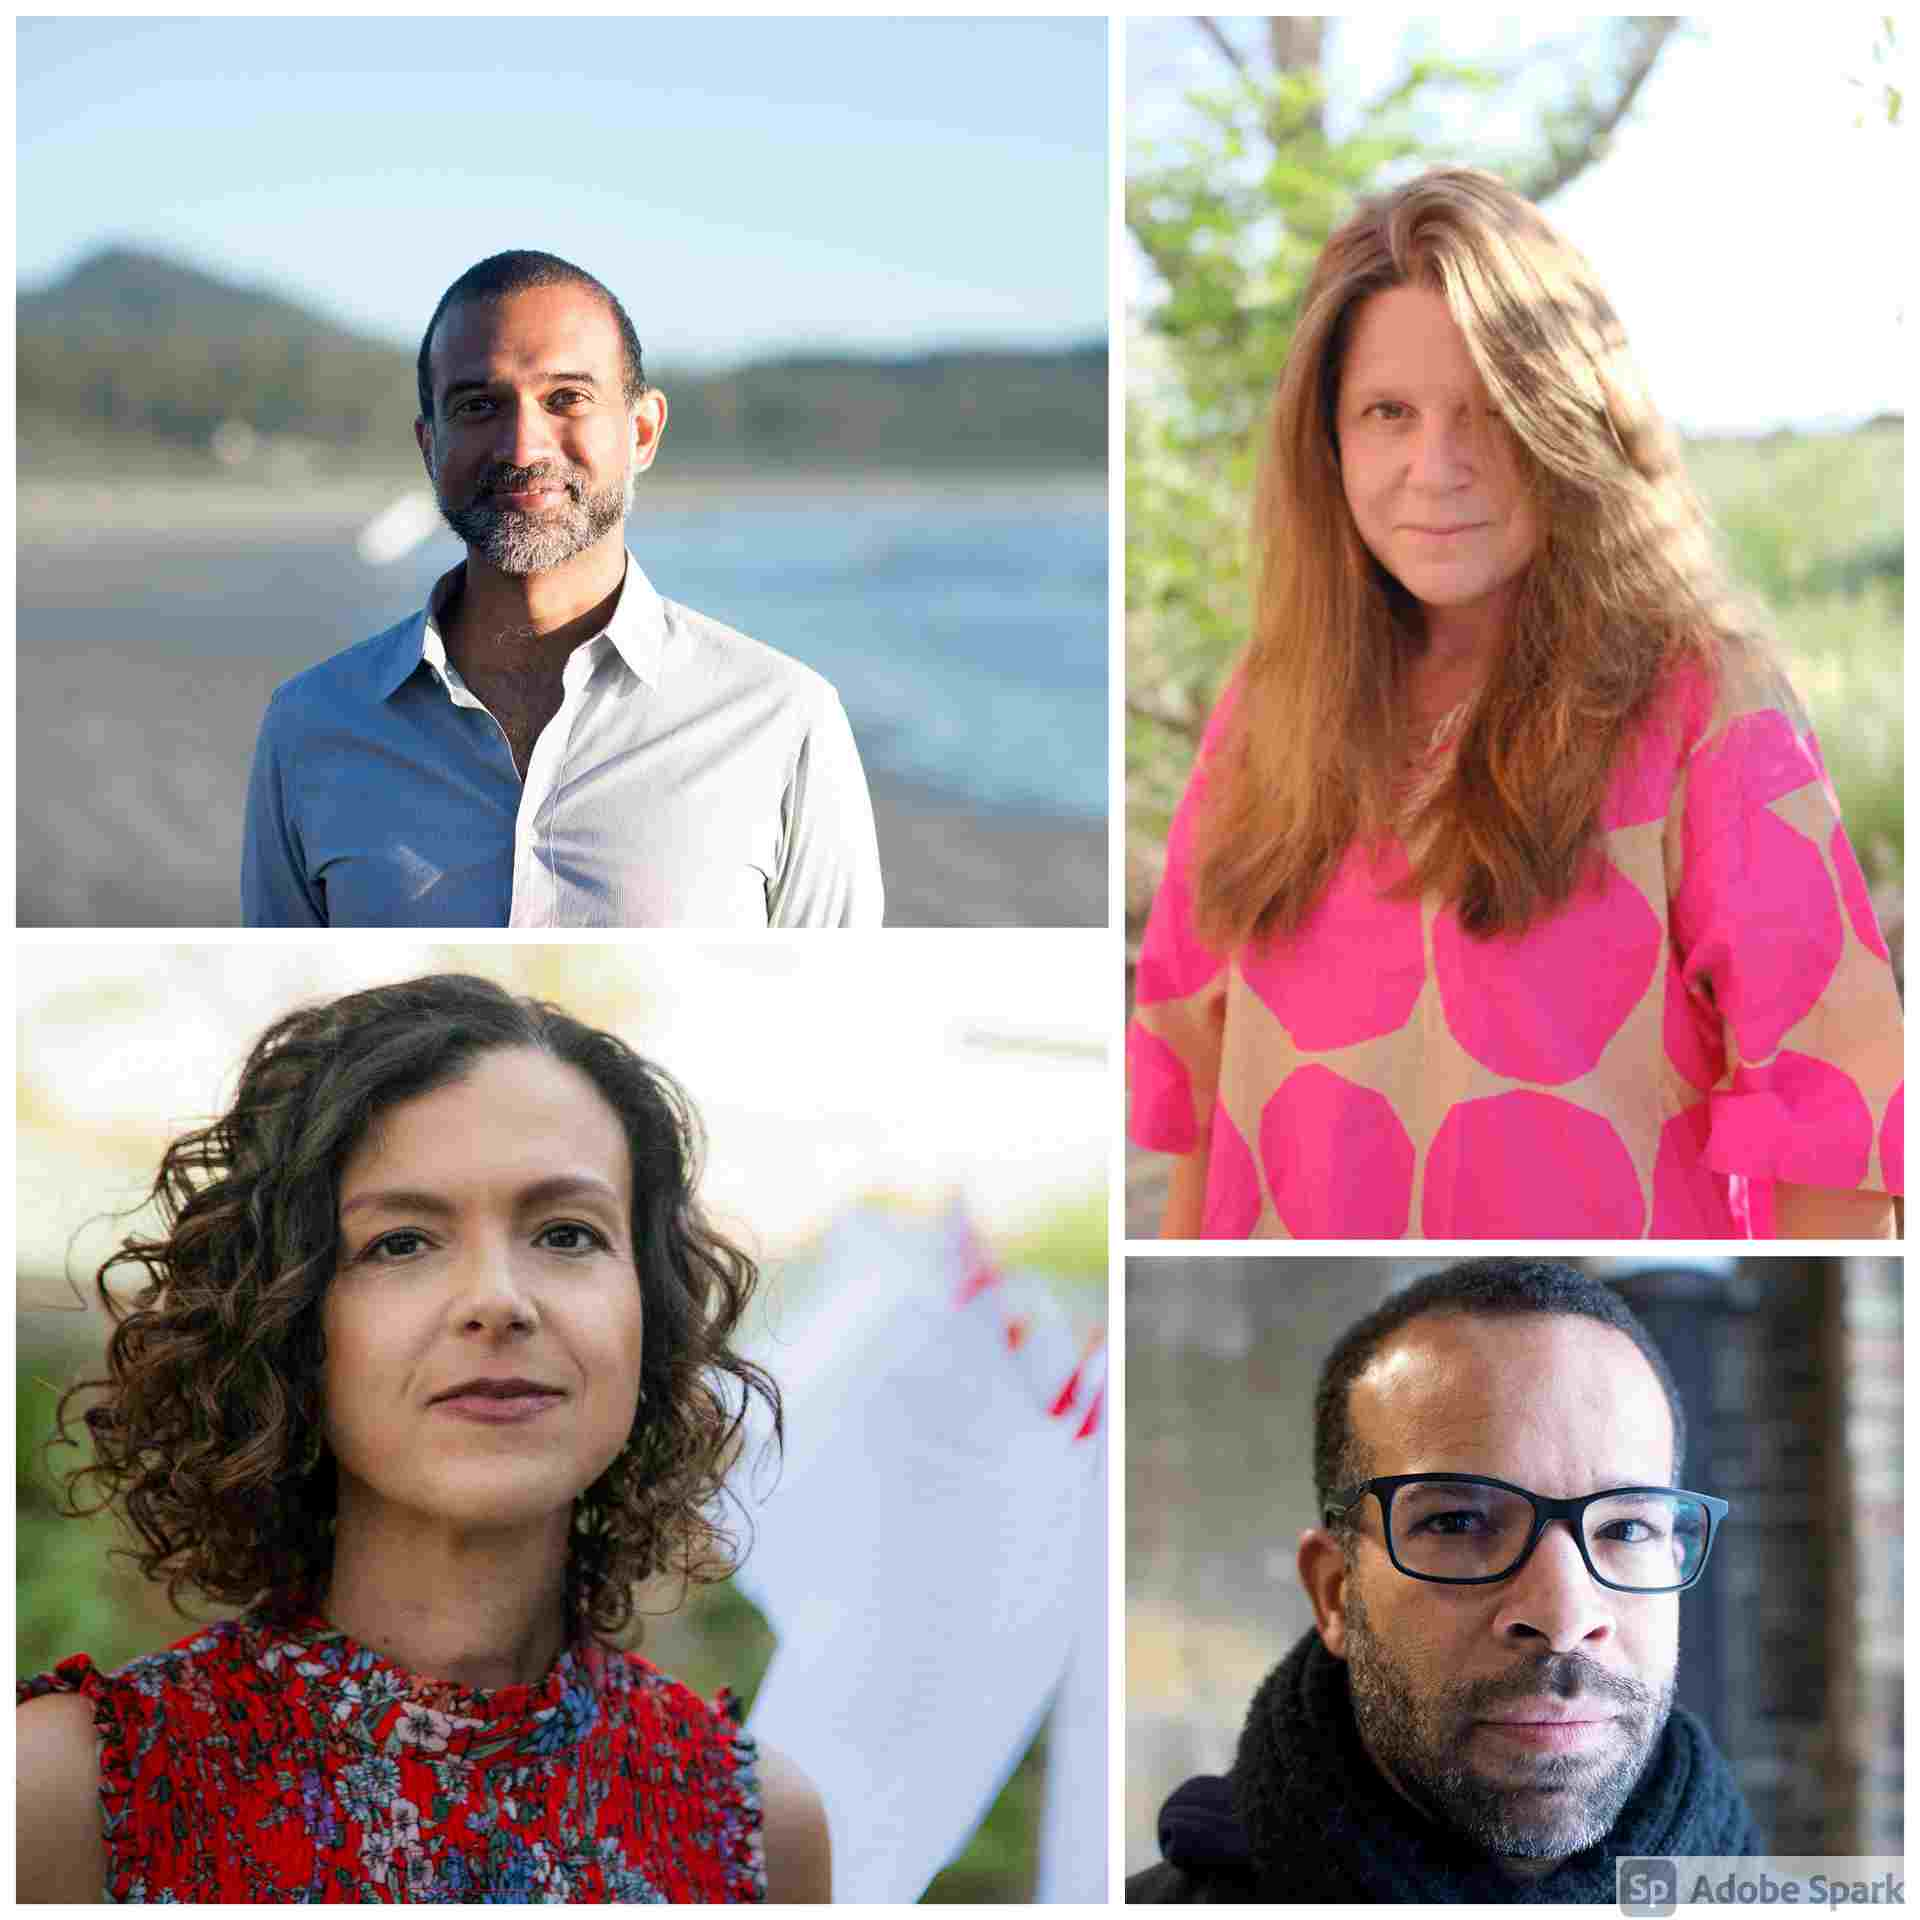 Phoenix Poets Series to Relaunch in 2023 with Srikanth Reddy as Editor, Rosa Alcalá, Douglas Kearney, and Katie Peterson as Consulting Editors